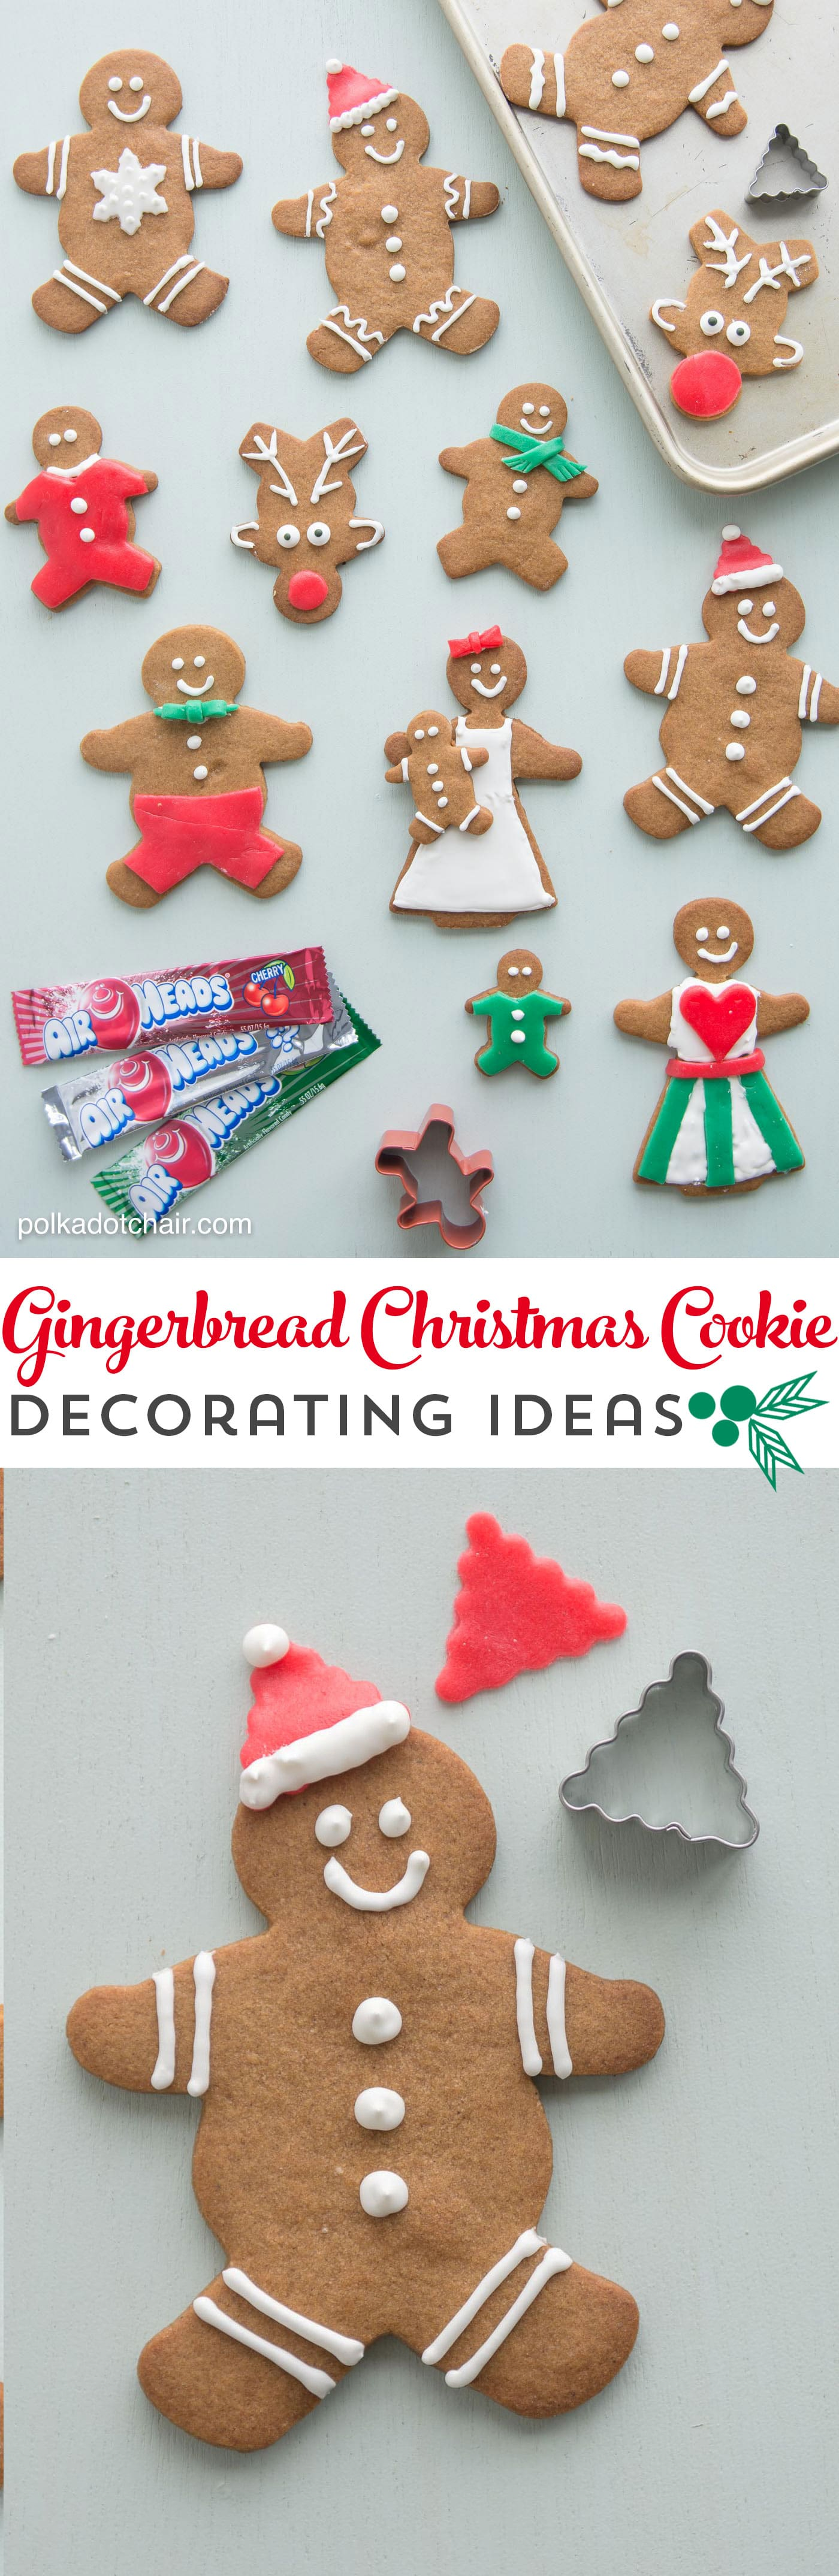 Gingerbread Cookie Decorating Ideas   The Polka Dot Chair Christmas Gingerbread Cookie Decorating Ideas  use Airheads candy to cut  out  clothes  and